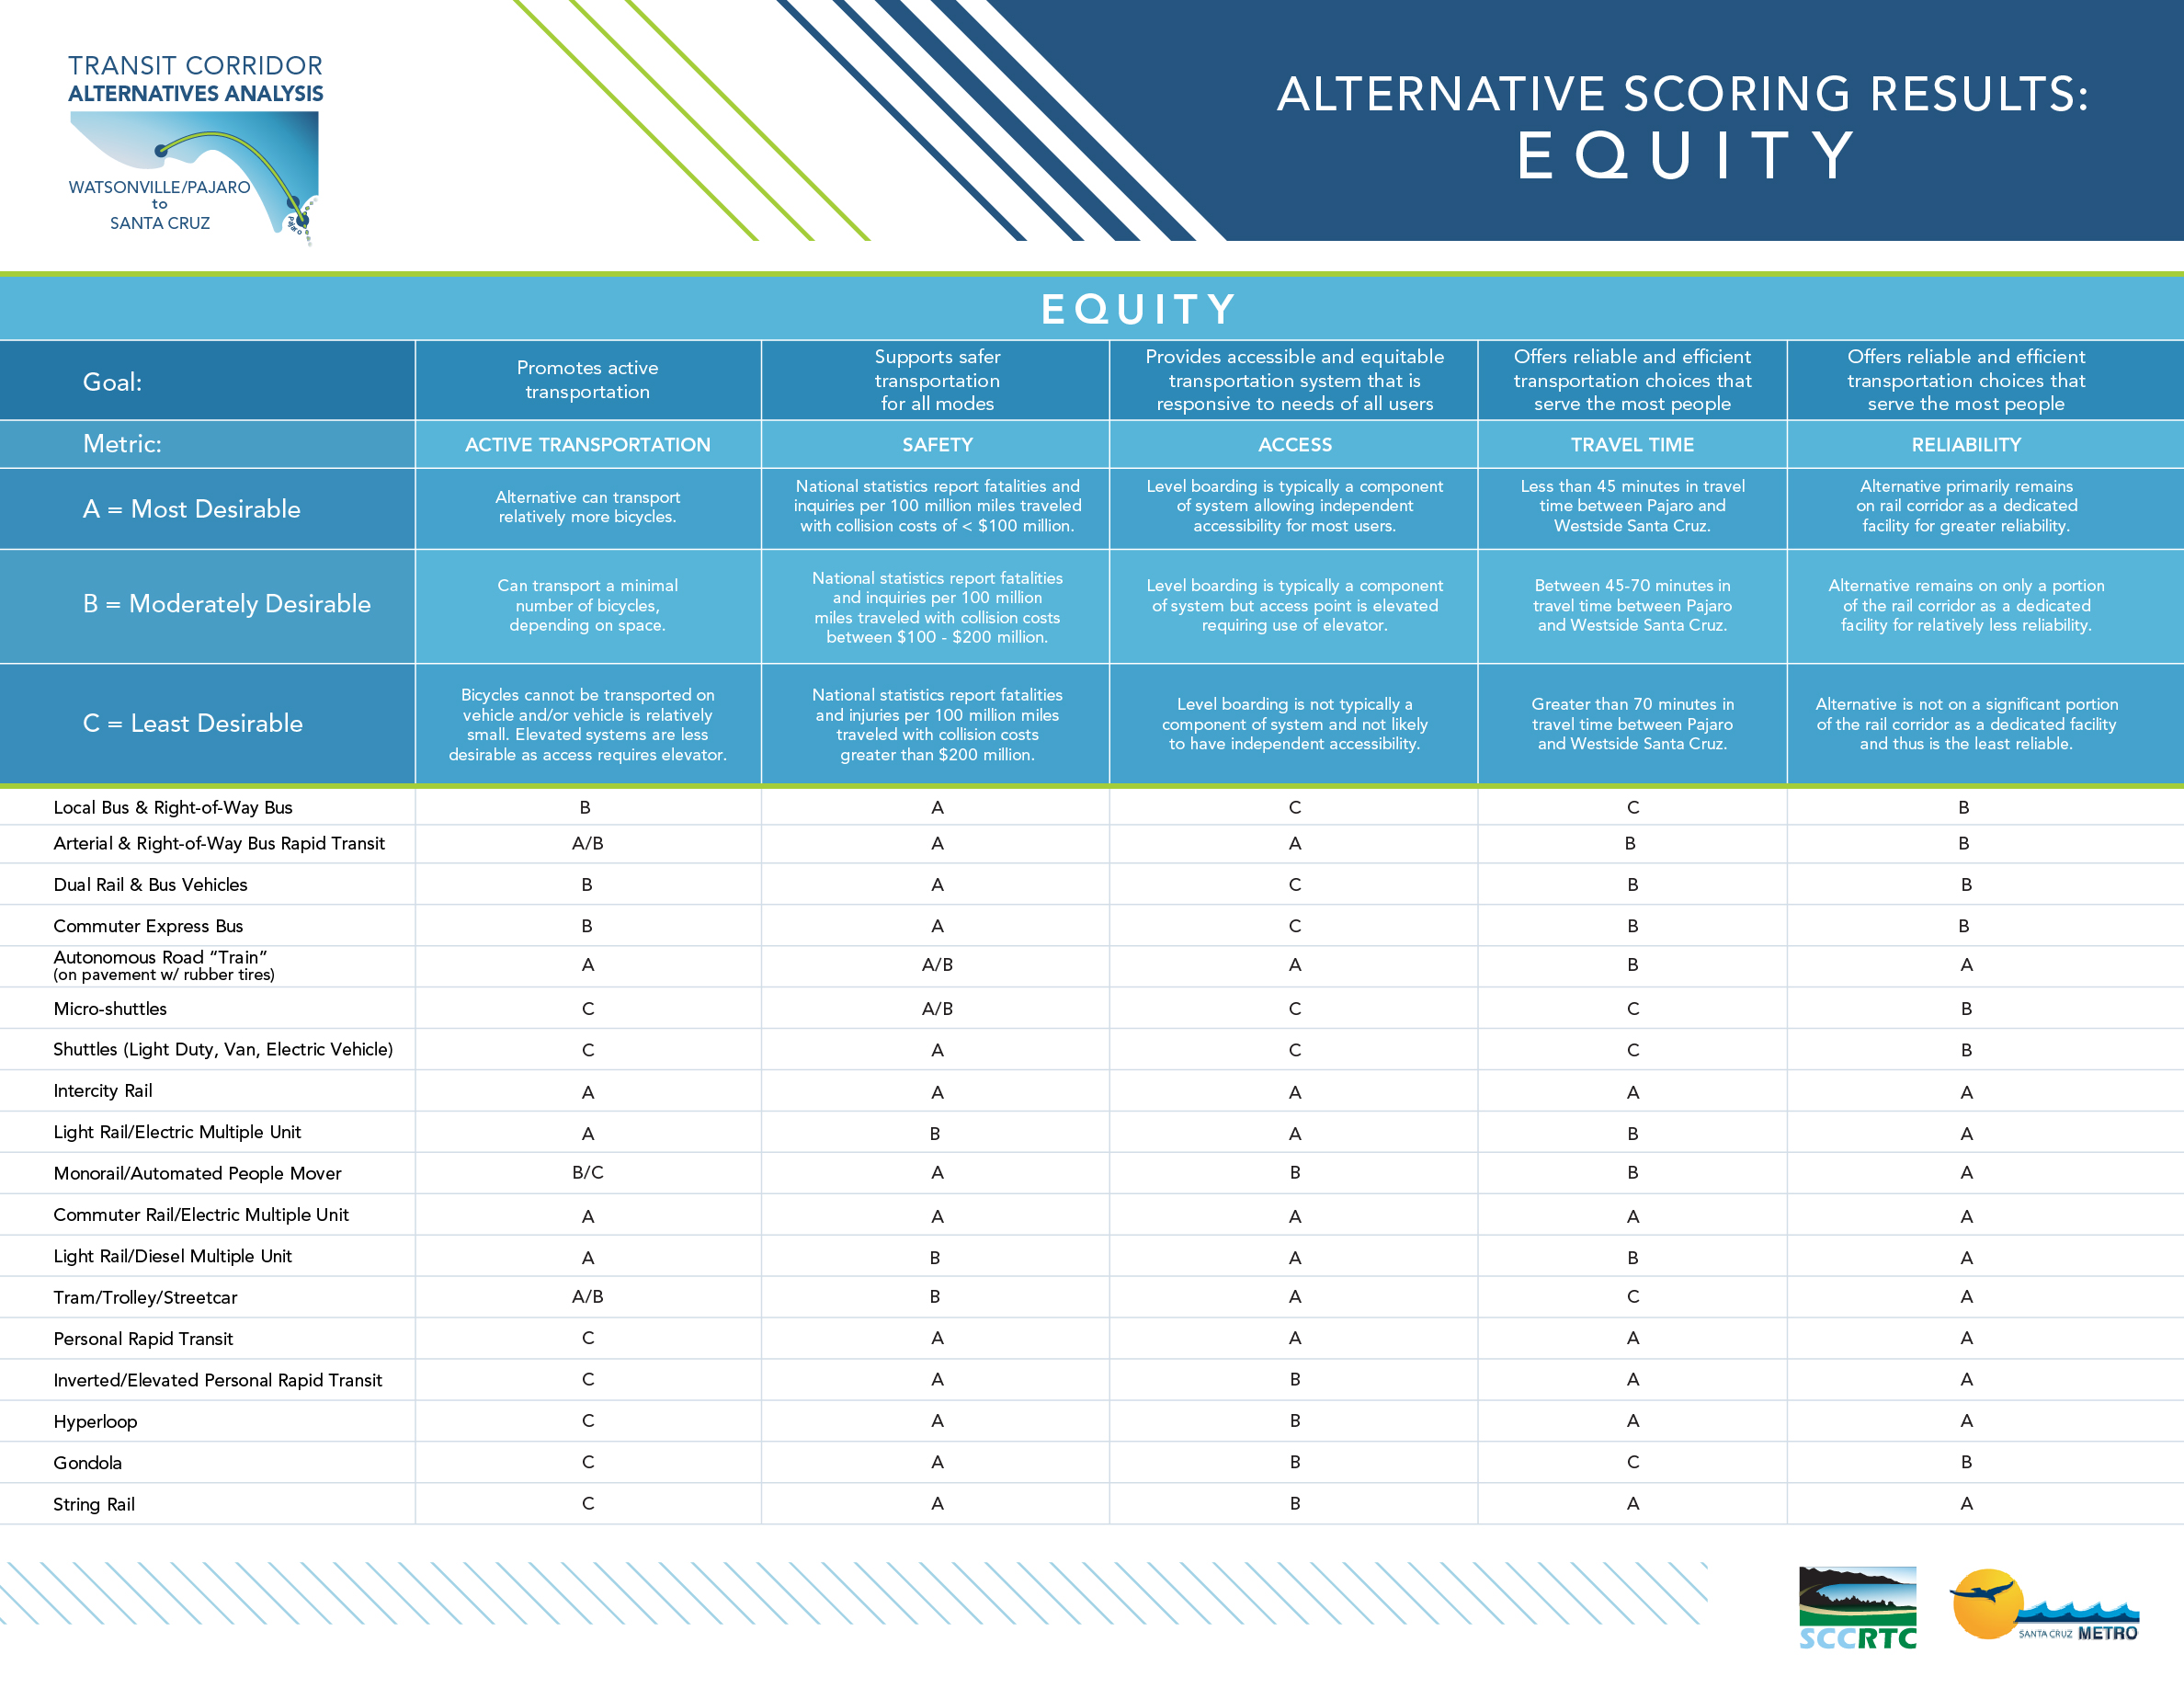 Board 5: Alternative Scoring Results: Equity Each alternative was scored against specific goals for Equity including the following: • Promotes active transportation • Supports safer transportation for all modes • Provides accessible and equitable transportation system that is responsive to needs of all users • Offers reliable and efficient transportation choices that serve the most people. • Offers reliable and efficient transportation choices that serve the most people.